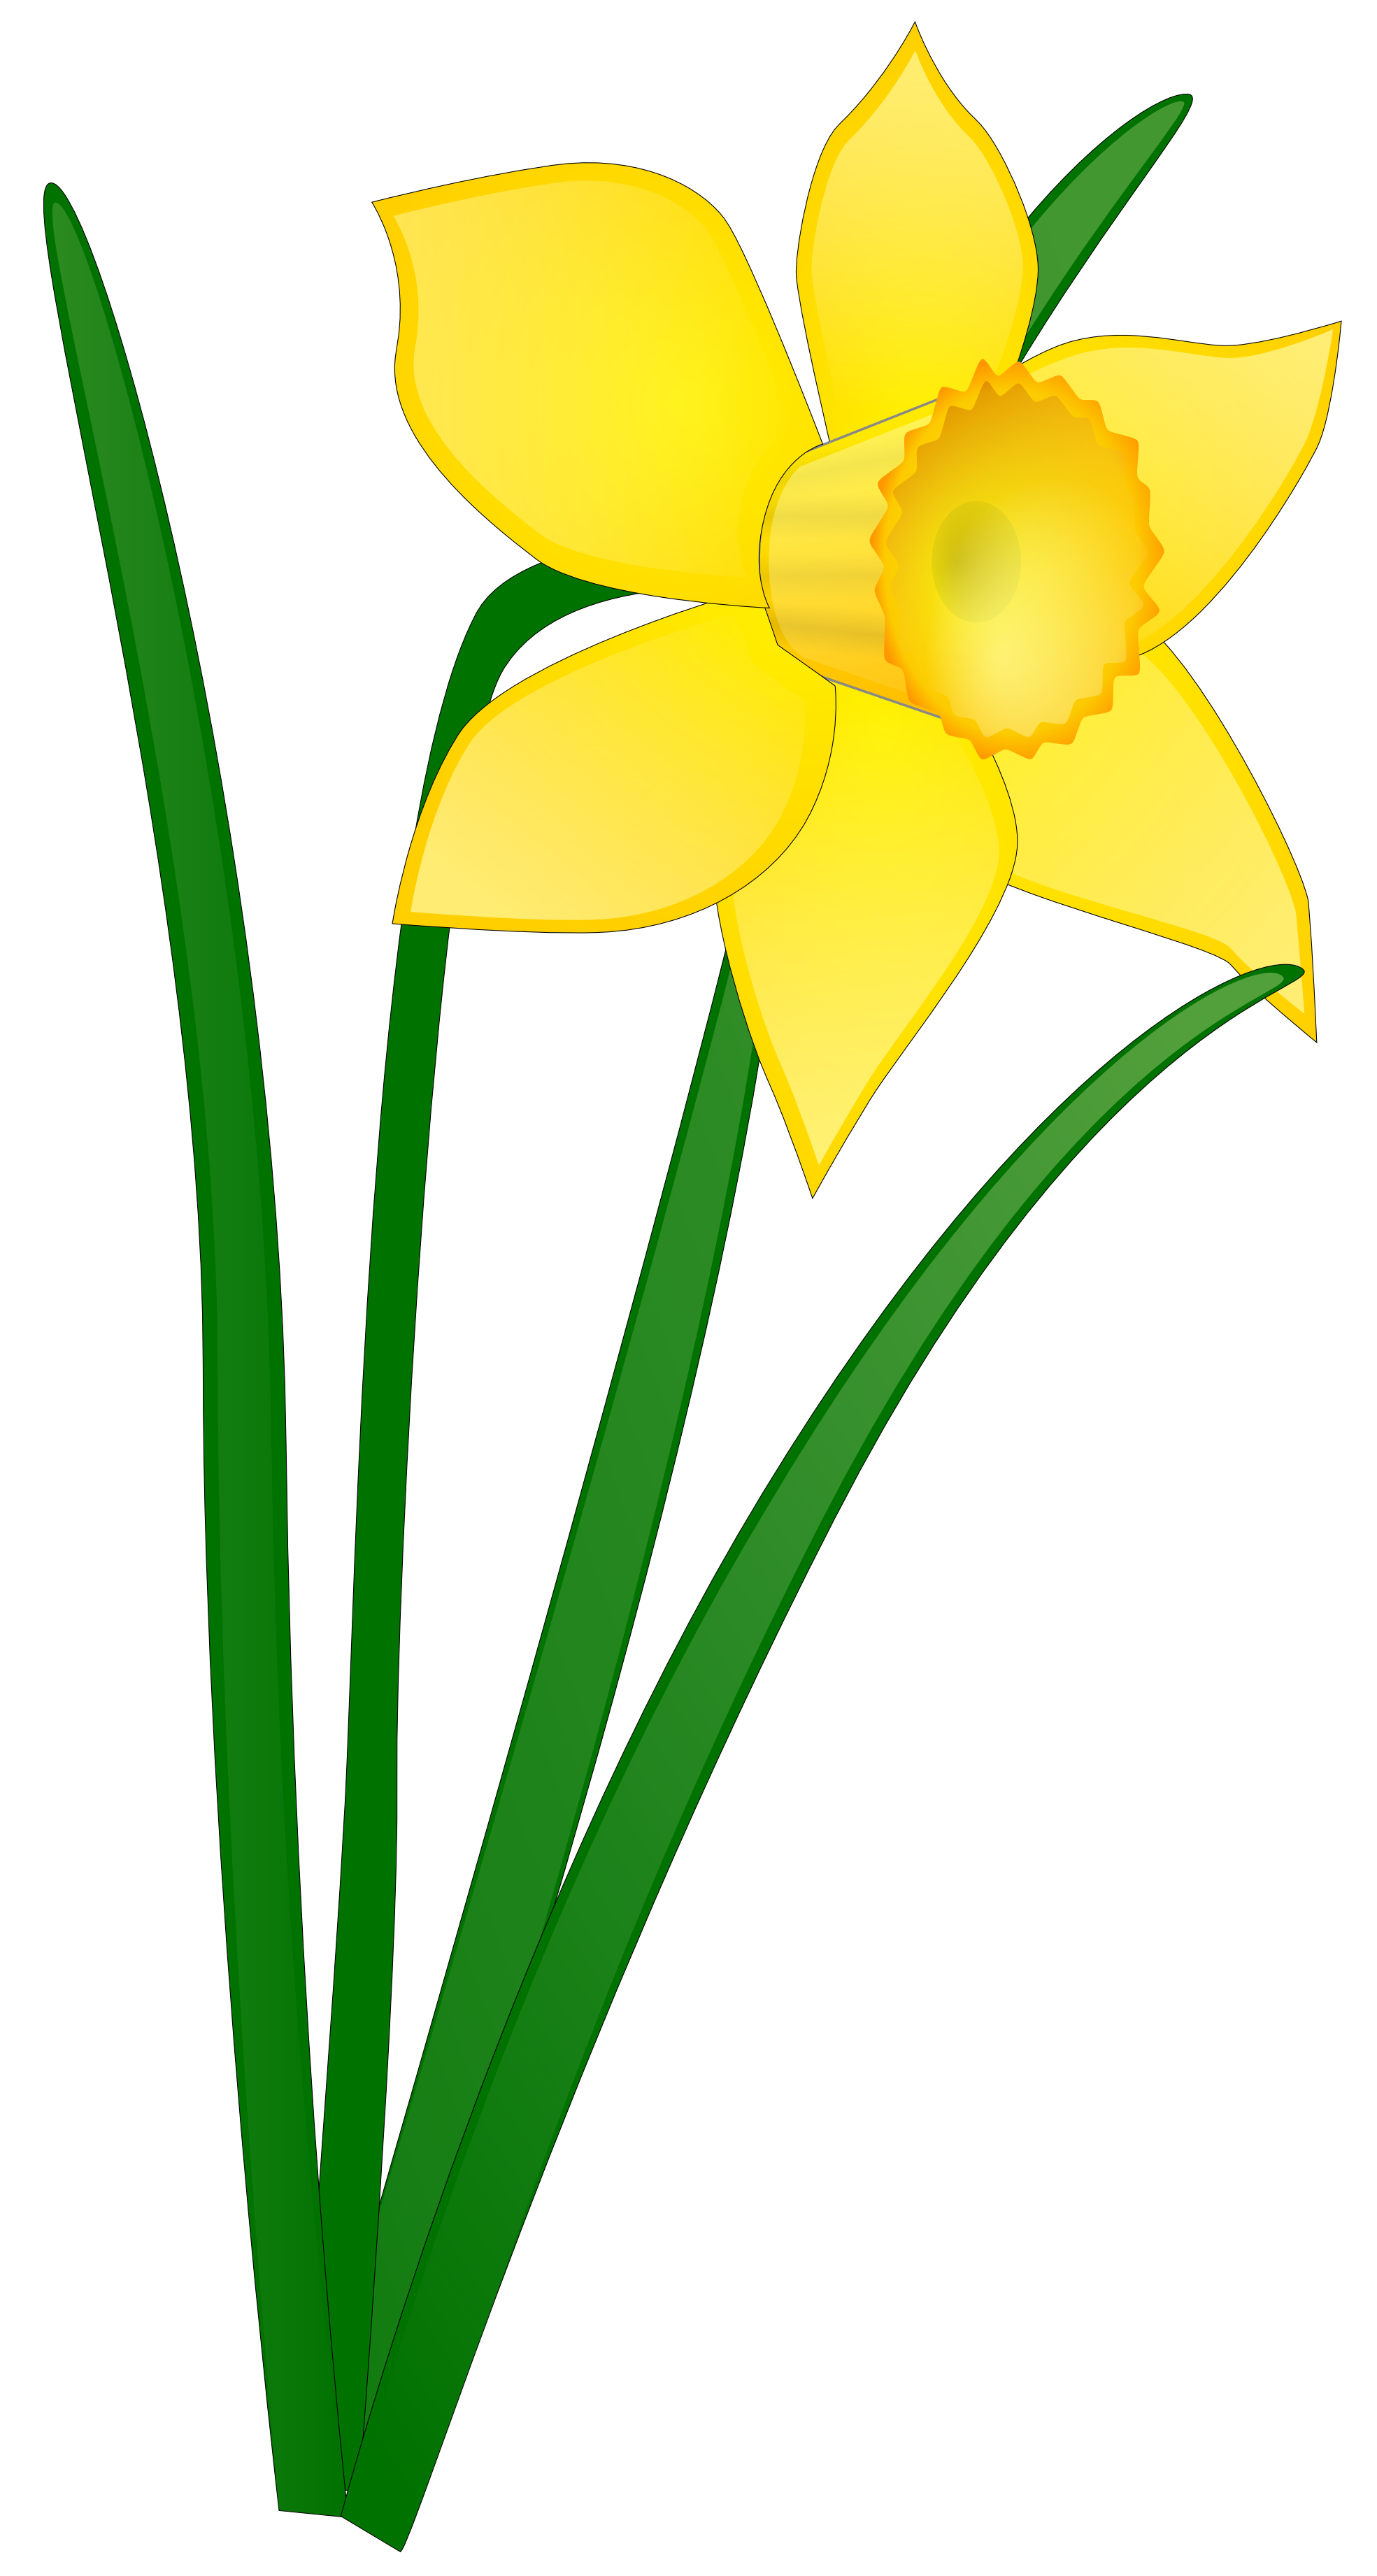 Yellow cross clipart vector free library Daffodil Flower Clip Art Clipart Panda Free Clipart Images | Clipart ... vector free library